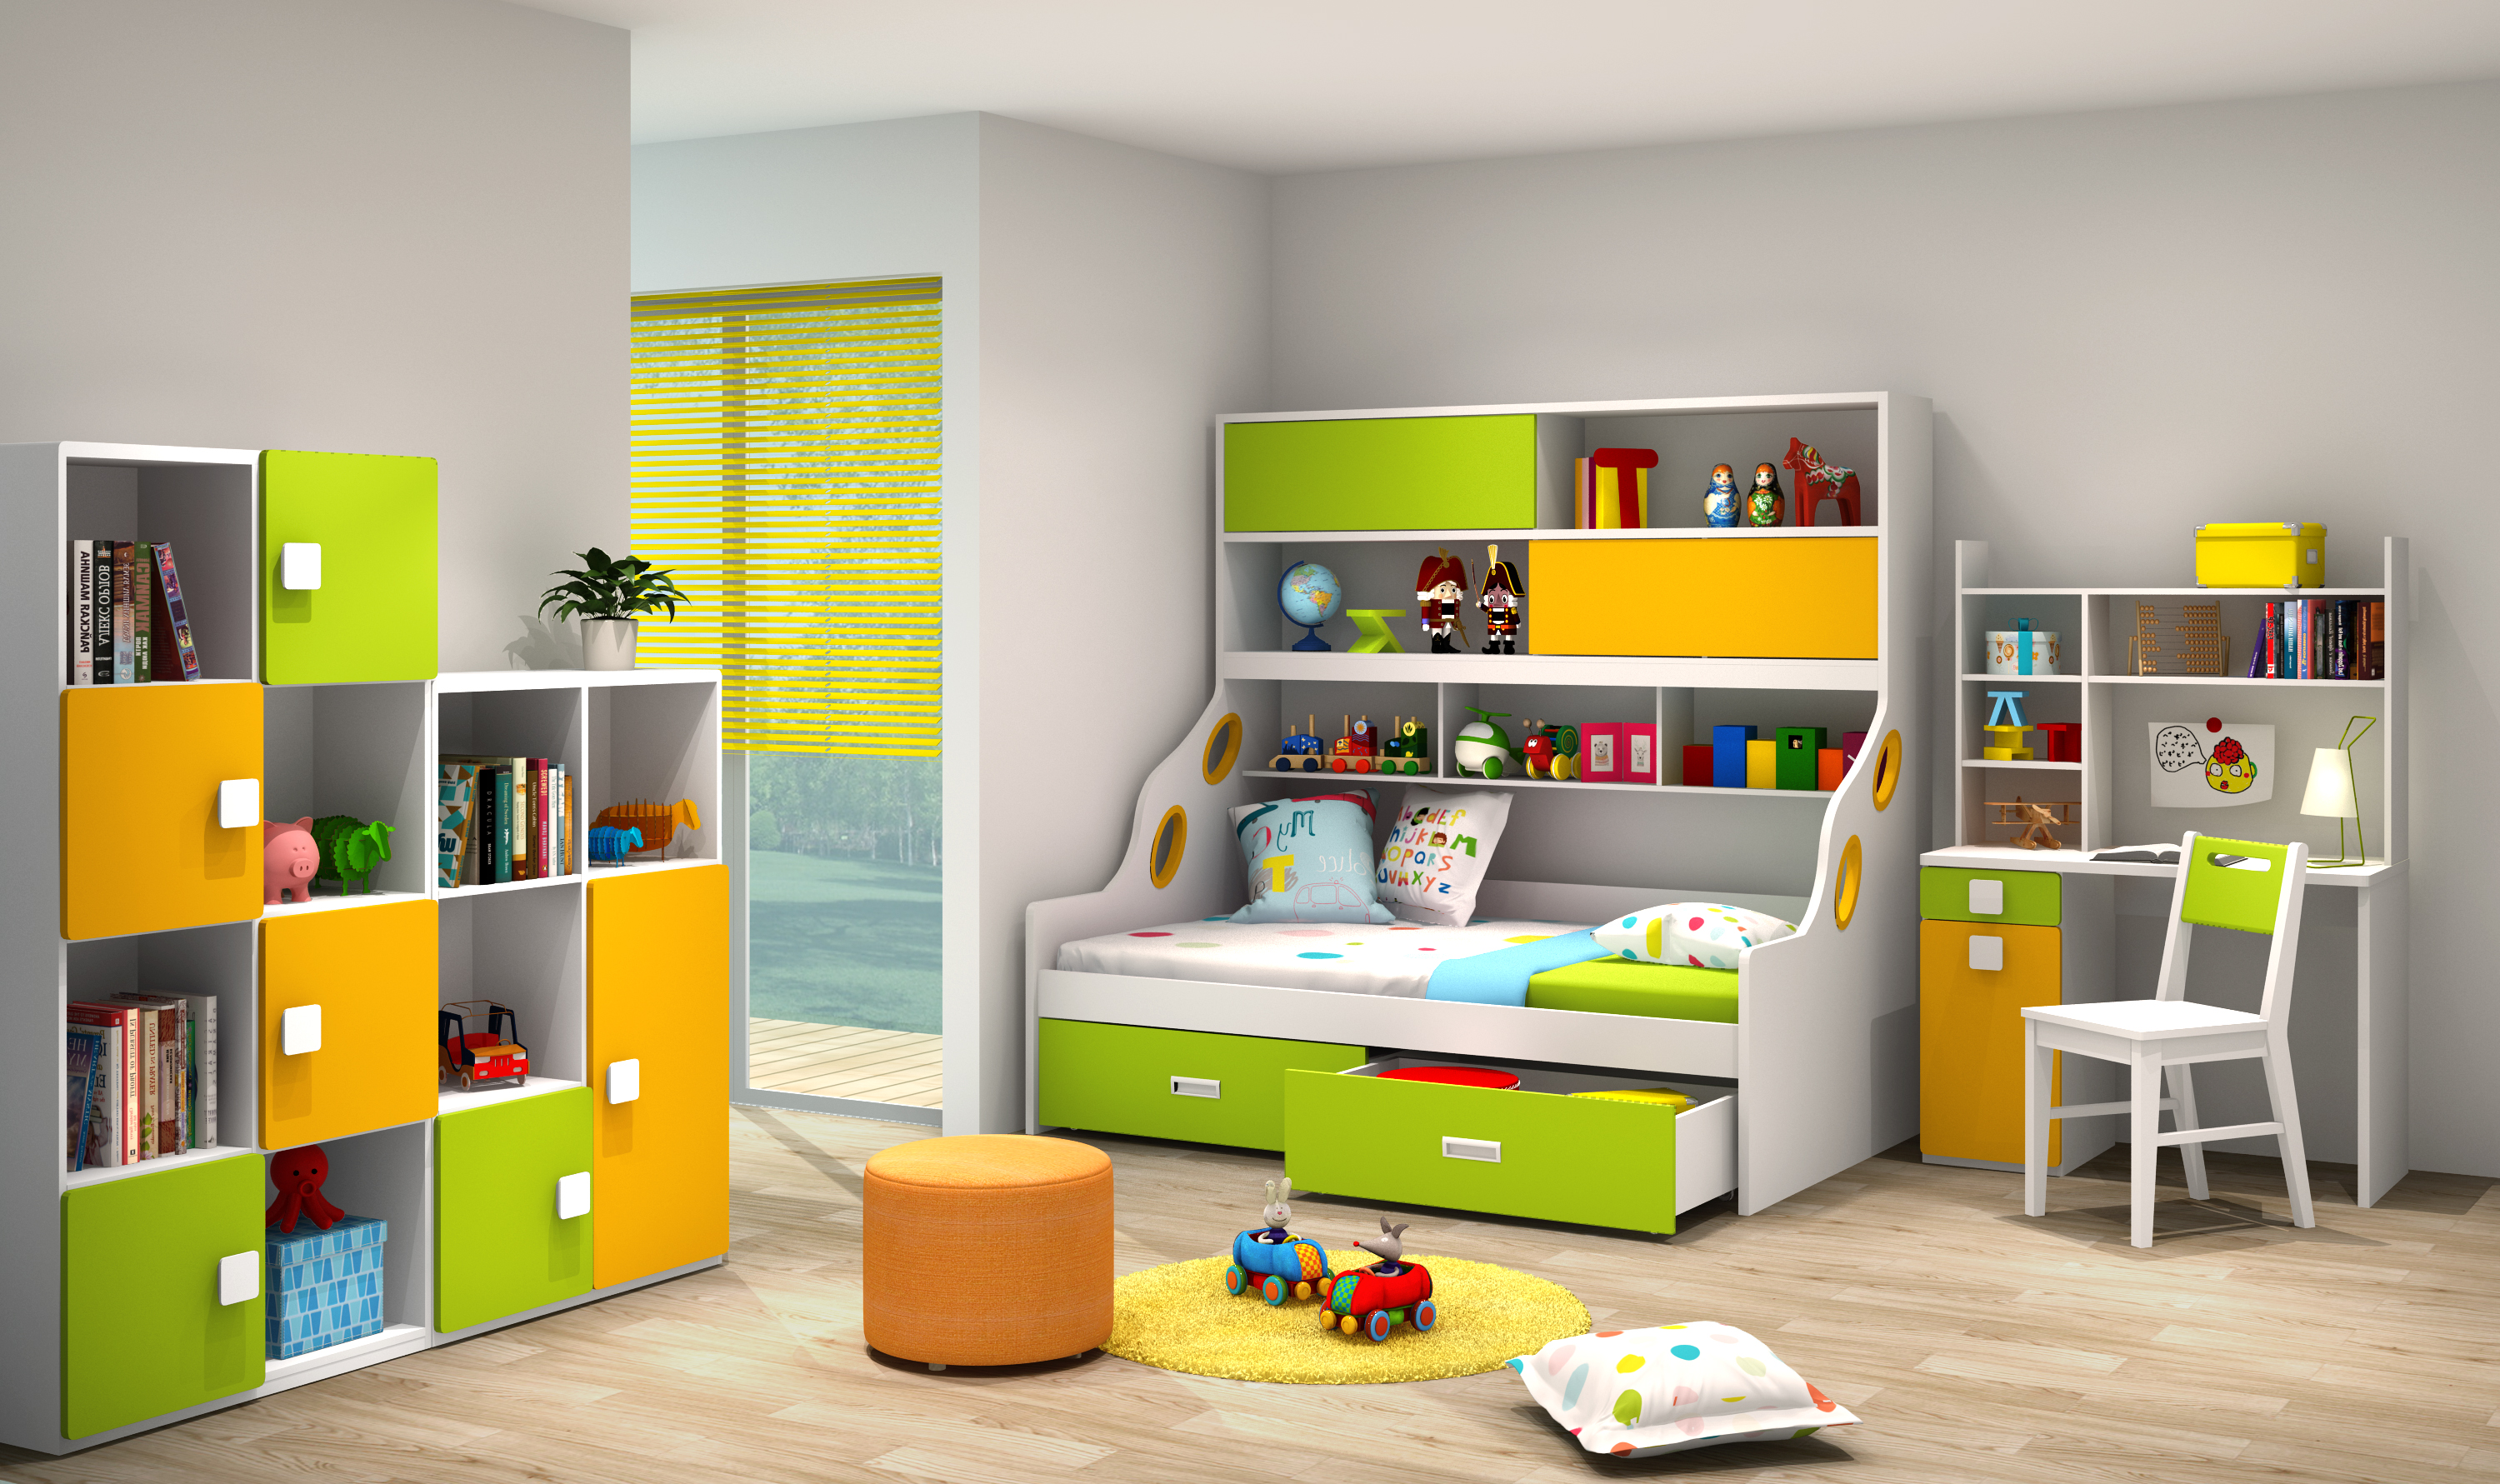 Things to keep in mind when you are buying kids furniture